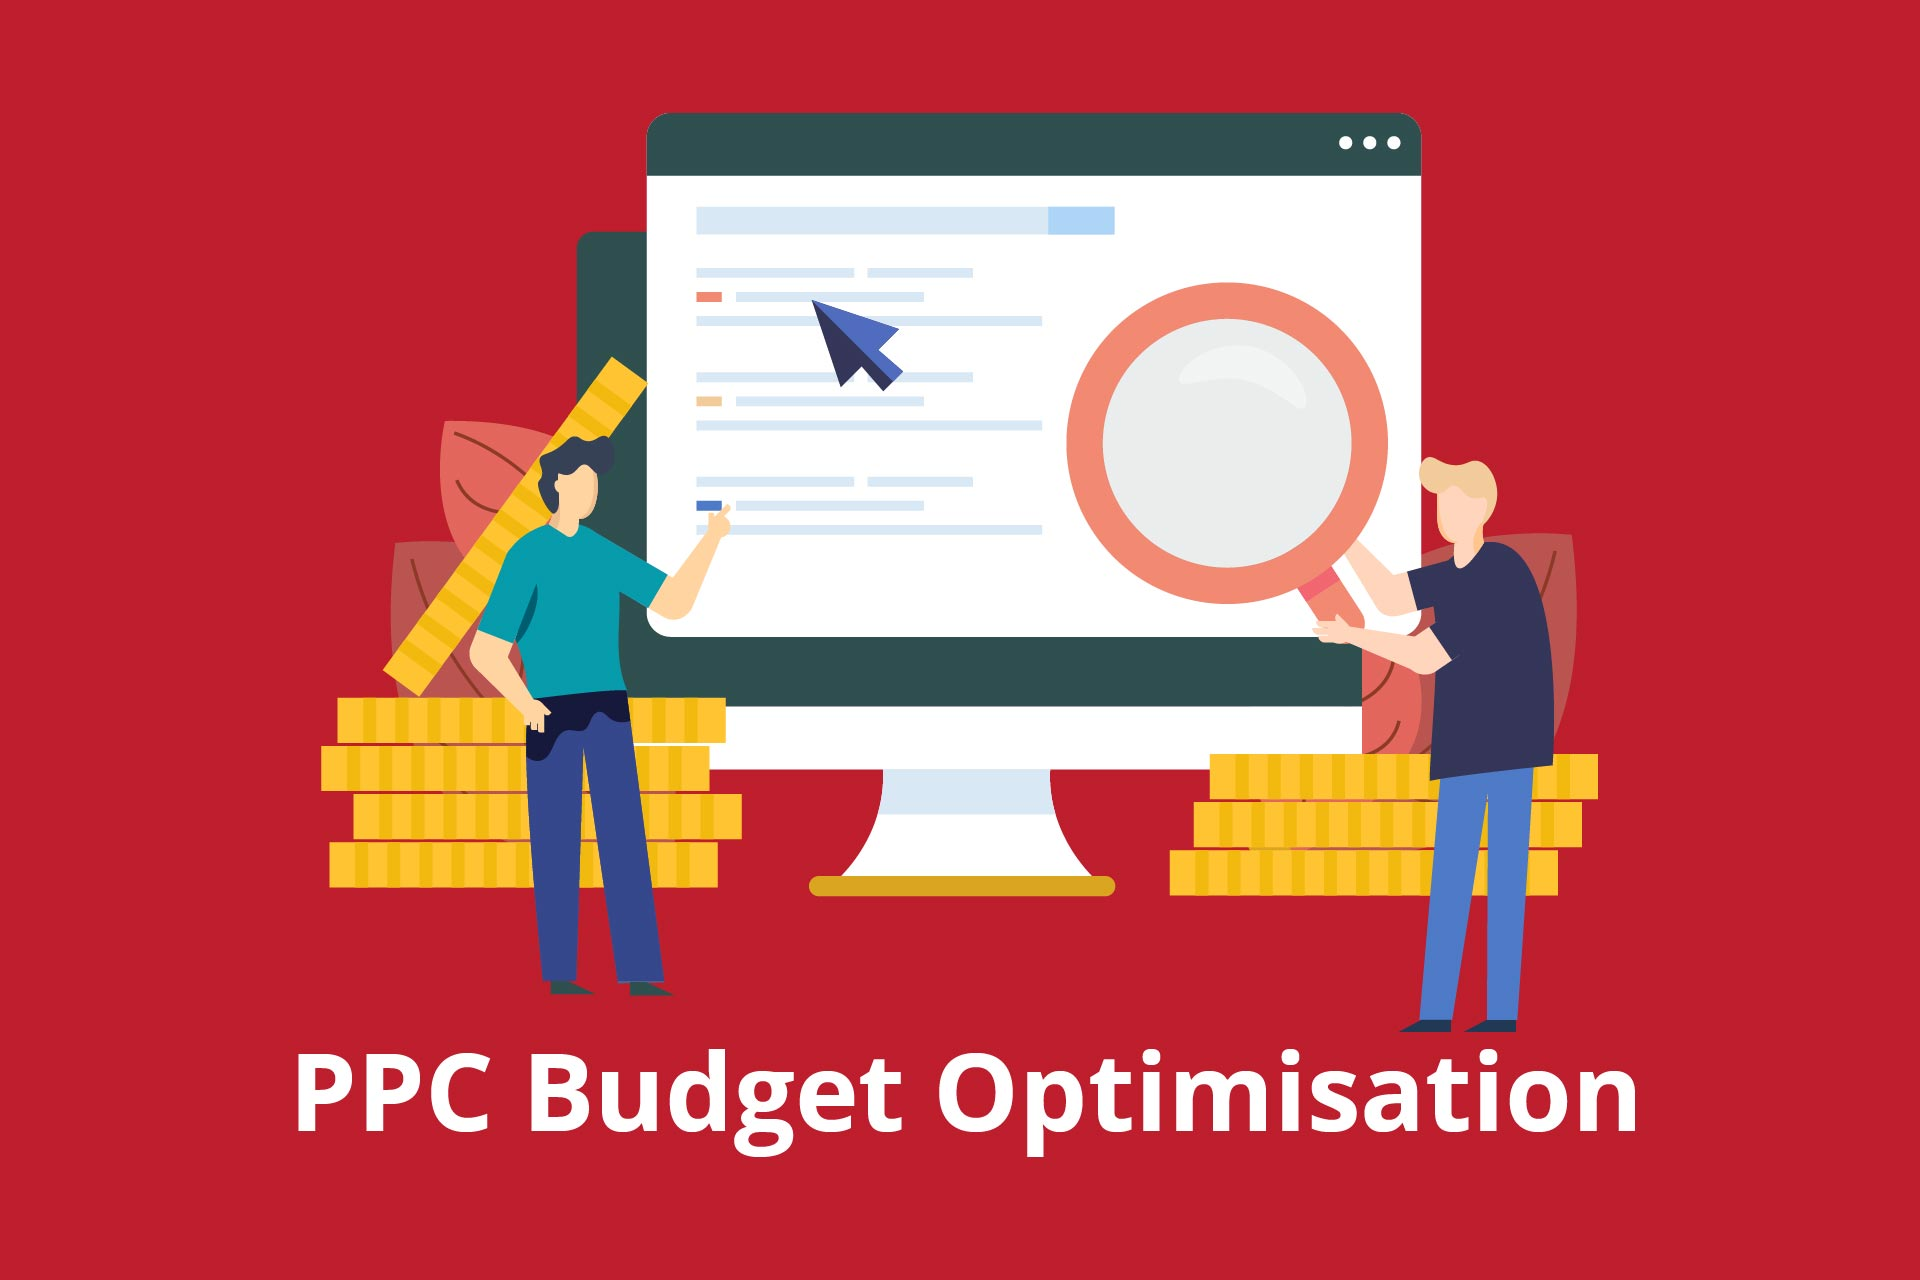 PPC Advertising Budget Optimisation - Digital Marketing For Asia